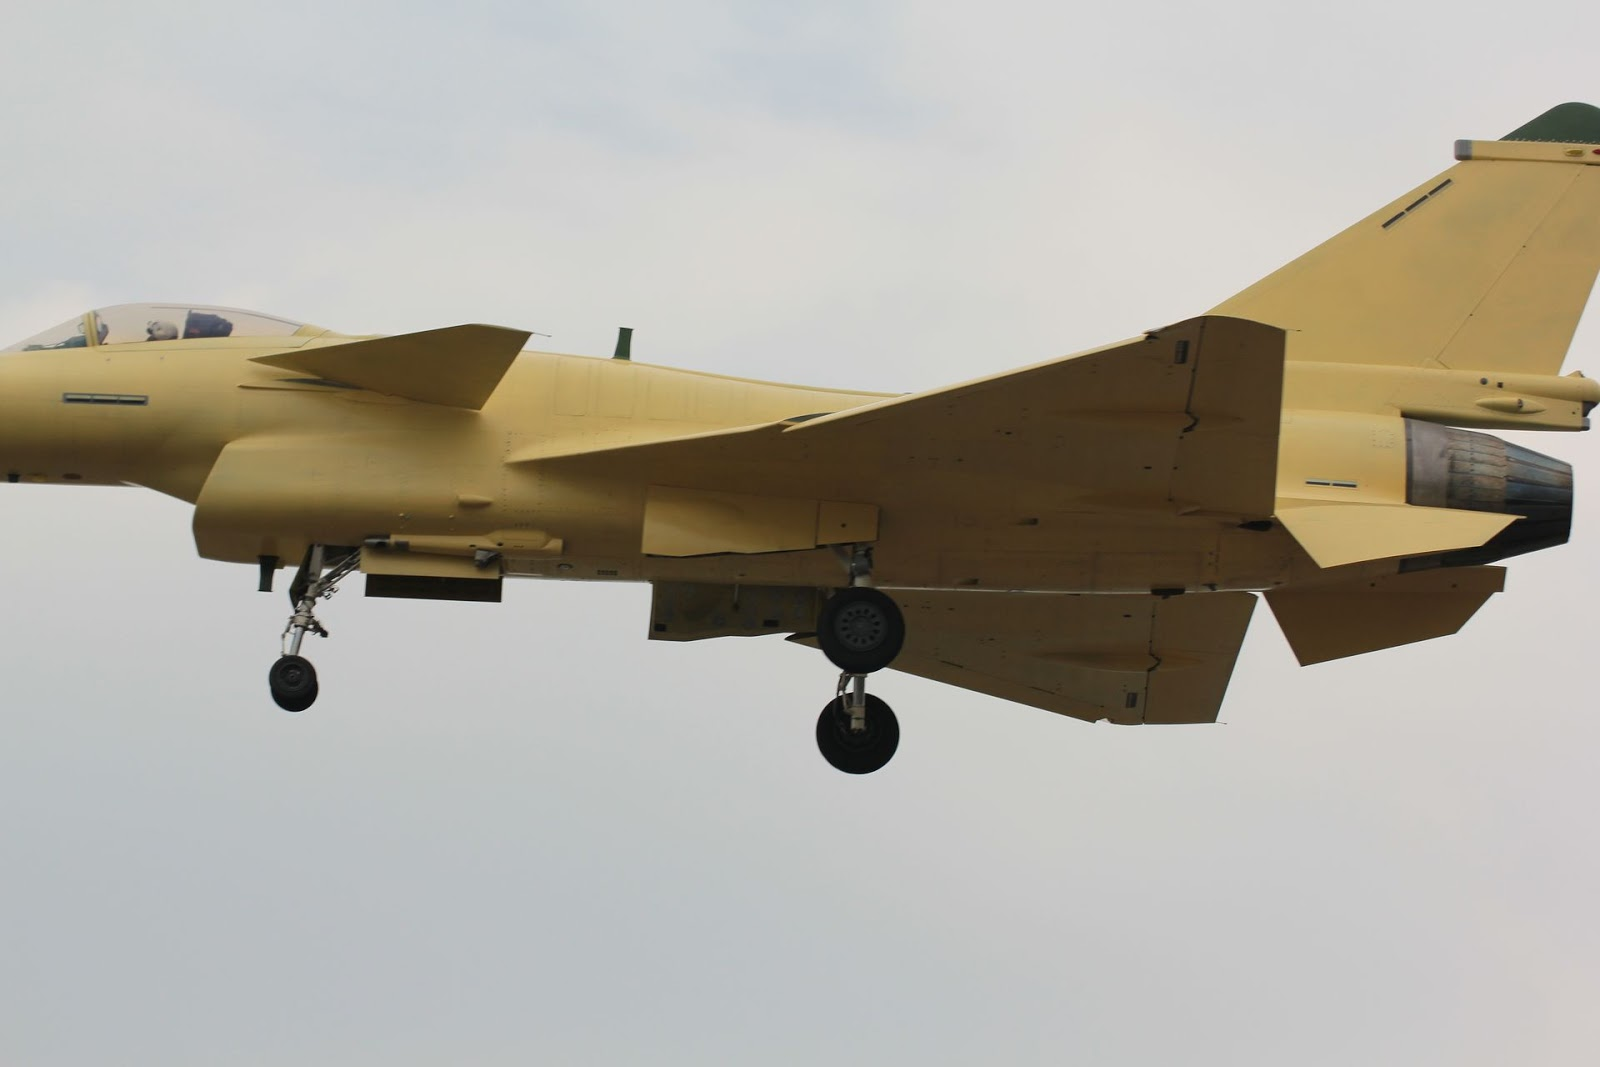 Chinese Preproduction J-10B Fighter Starts Flight Testing | Chinese Military Review